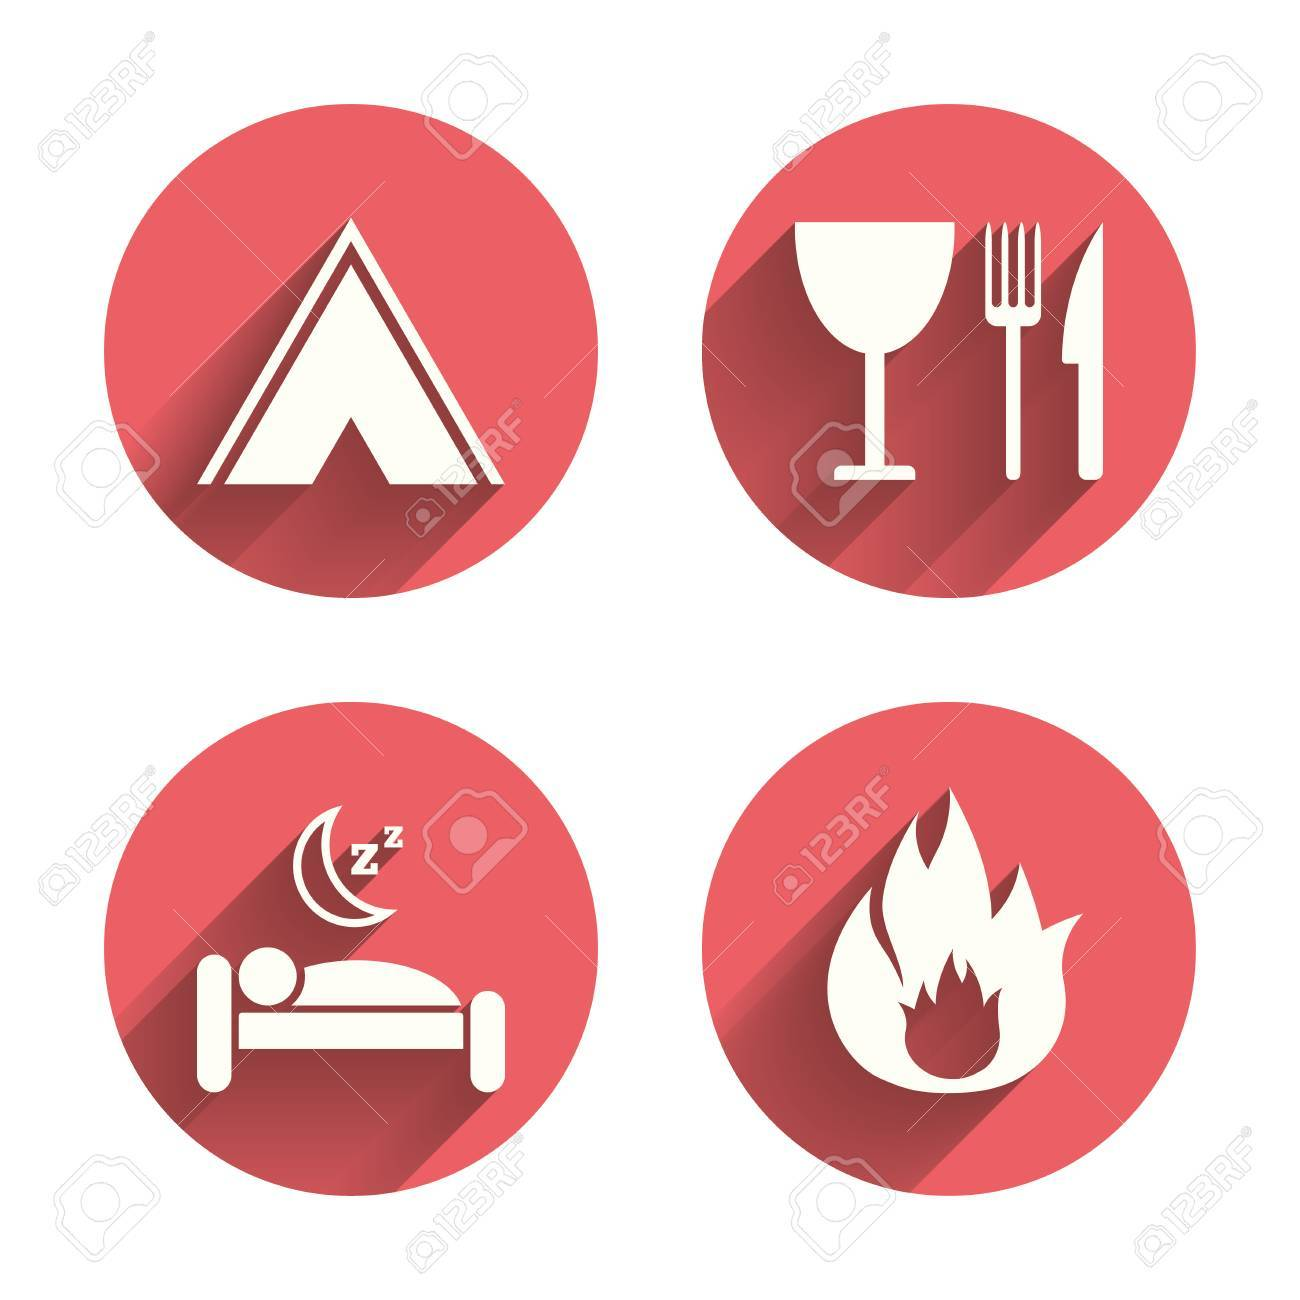 Food sleep c&ing tent and fire icons. Knife fork and wineglass.  sc 1 st  123RF Stock Photos & Food Sleep Camping Tent And Fire Icons. Knife Fork And ...